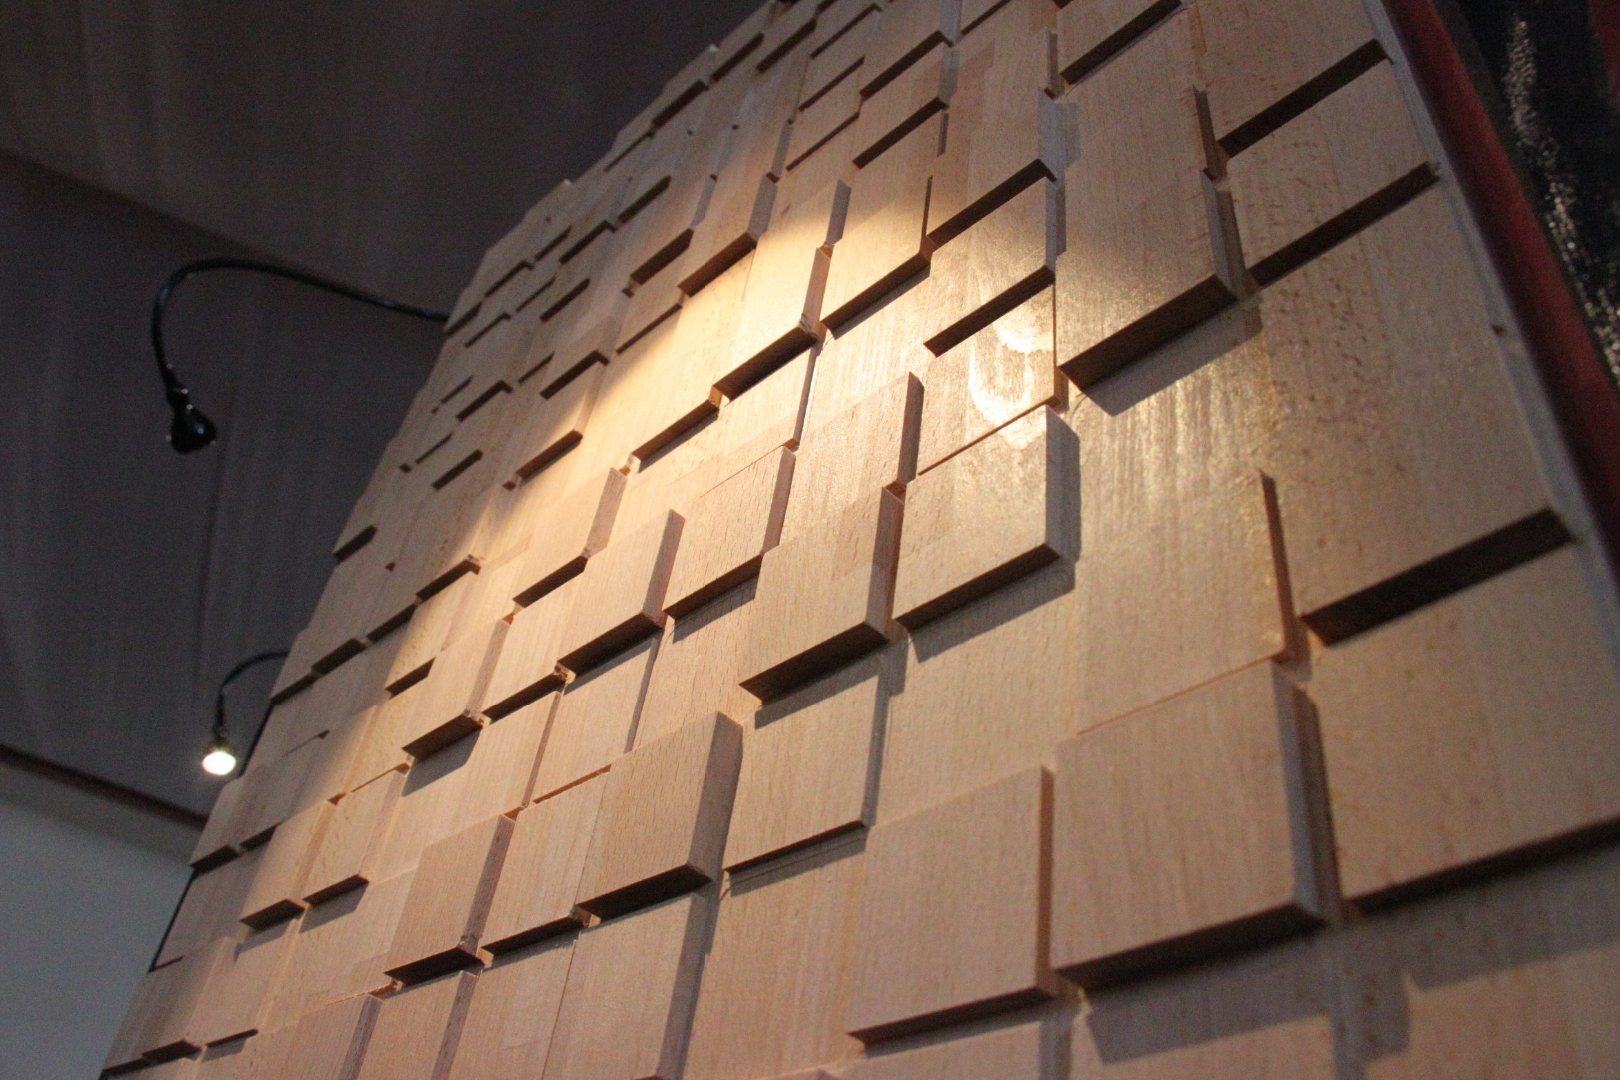 decorative panels 3D wood